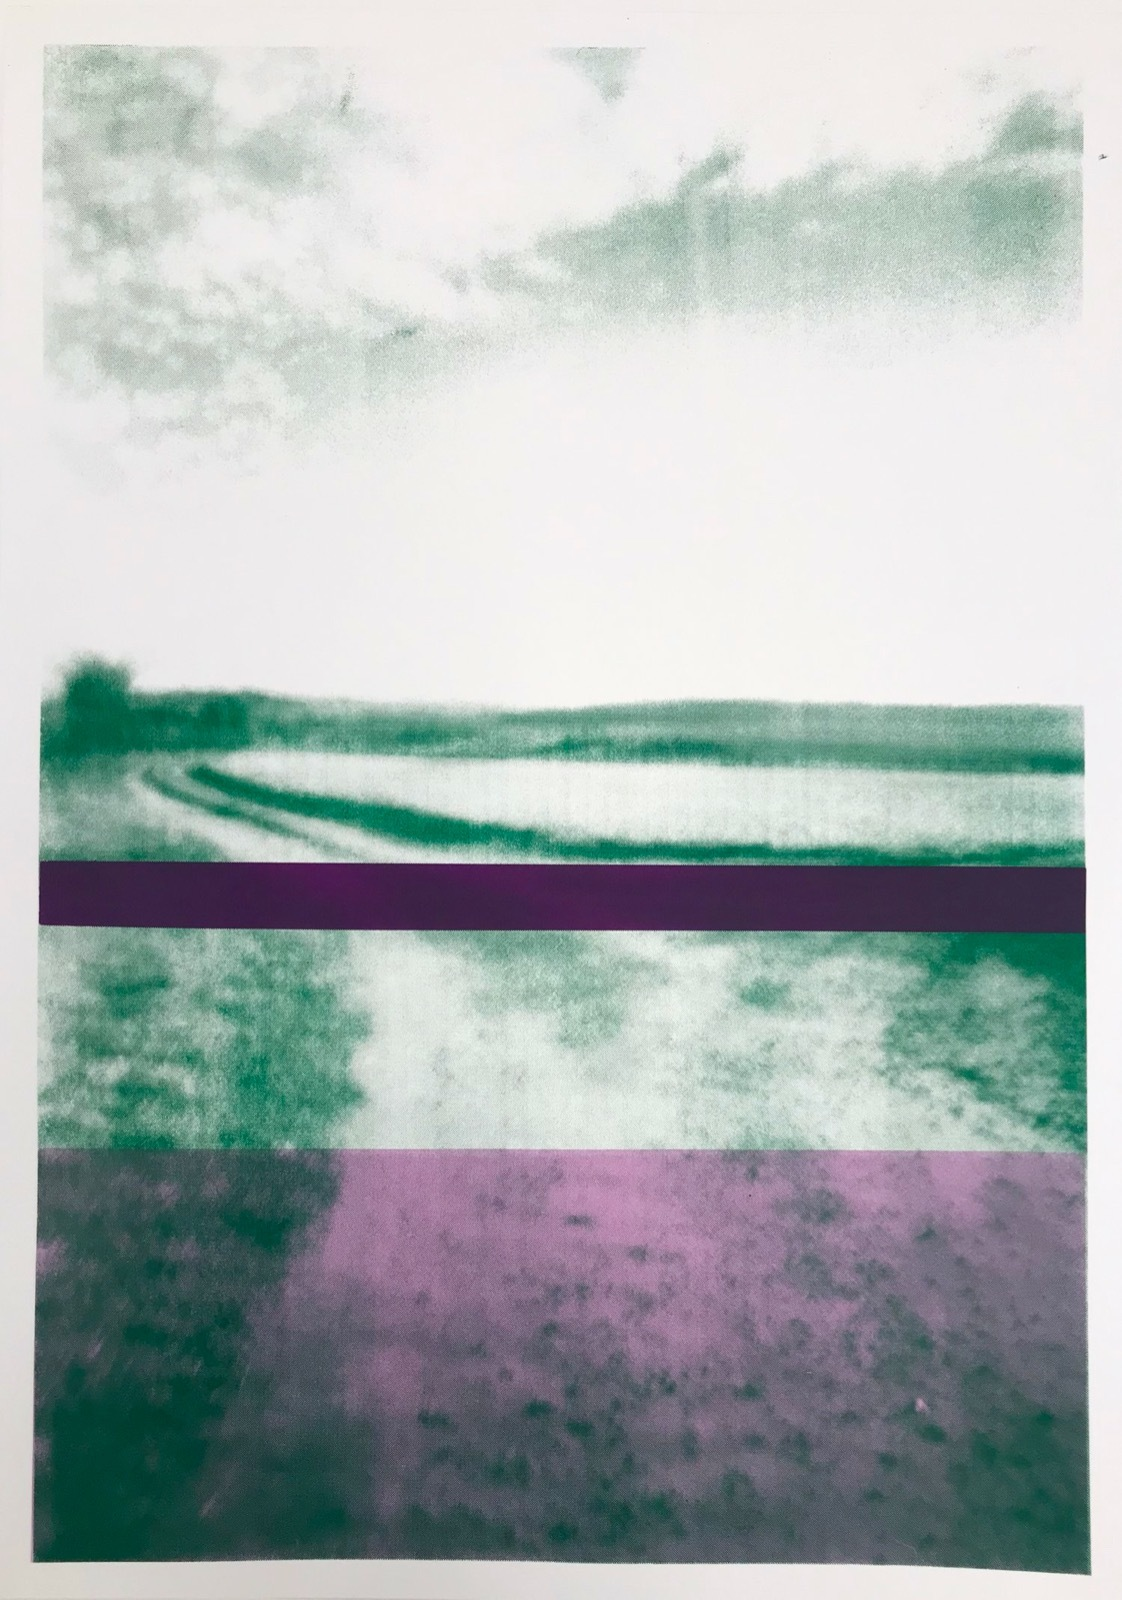 The Gallops: Green with Purple Bands